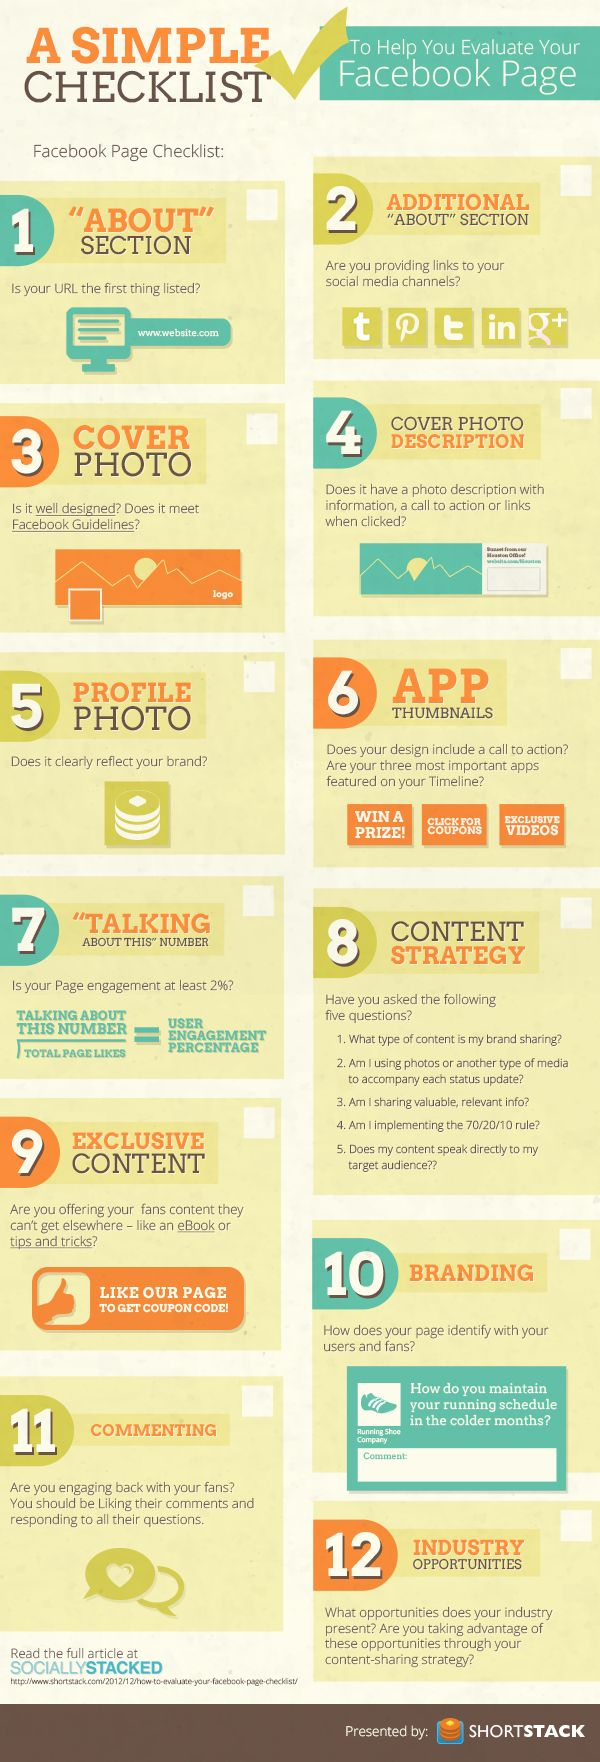 Evaluate Your Facebook Page With This Simple Checklist via @angela4design  [INFOGRAPHIC from ShortStack]